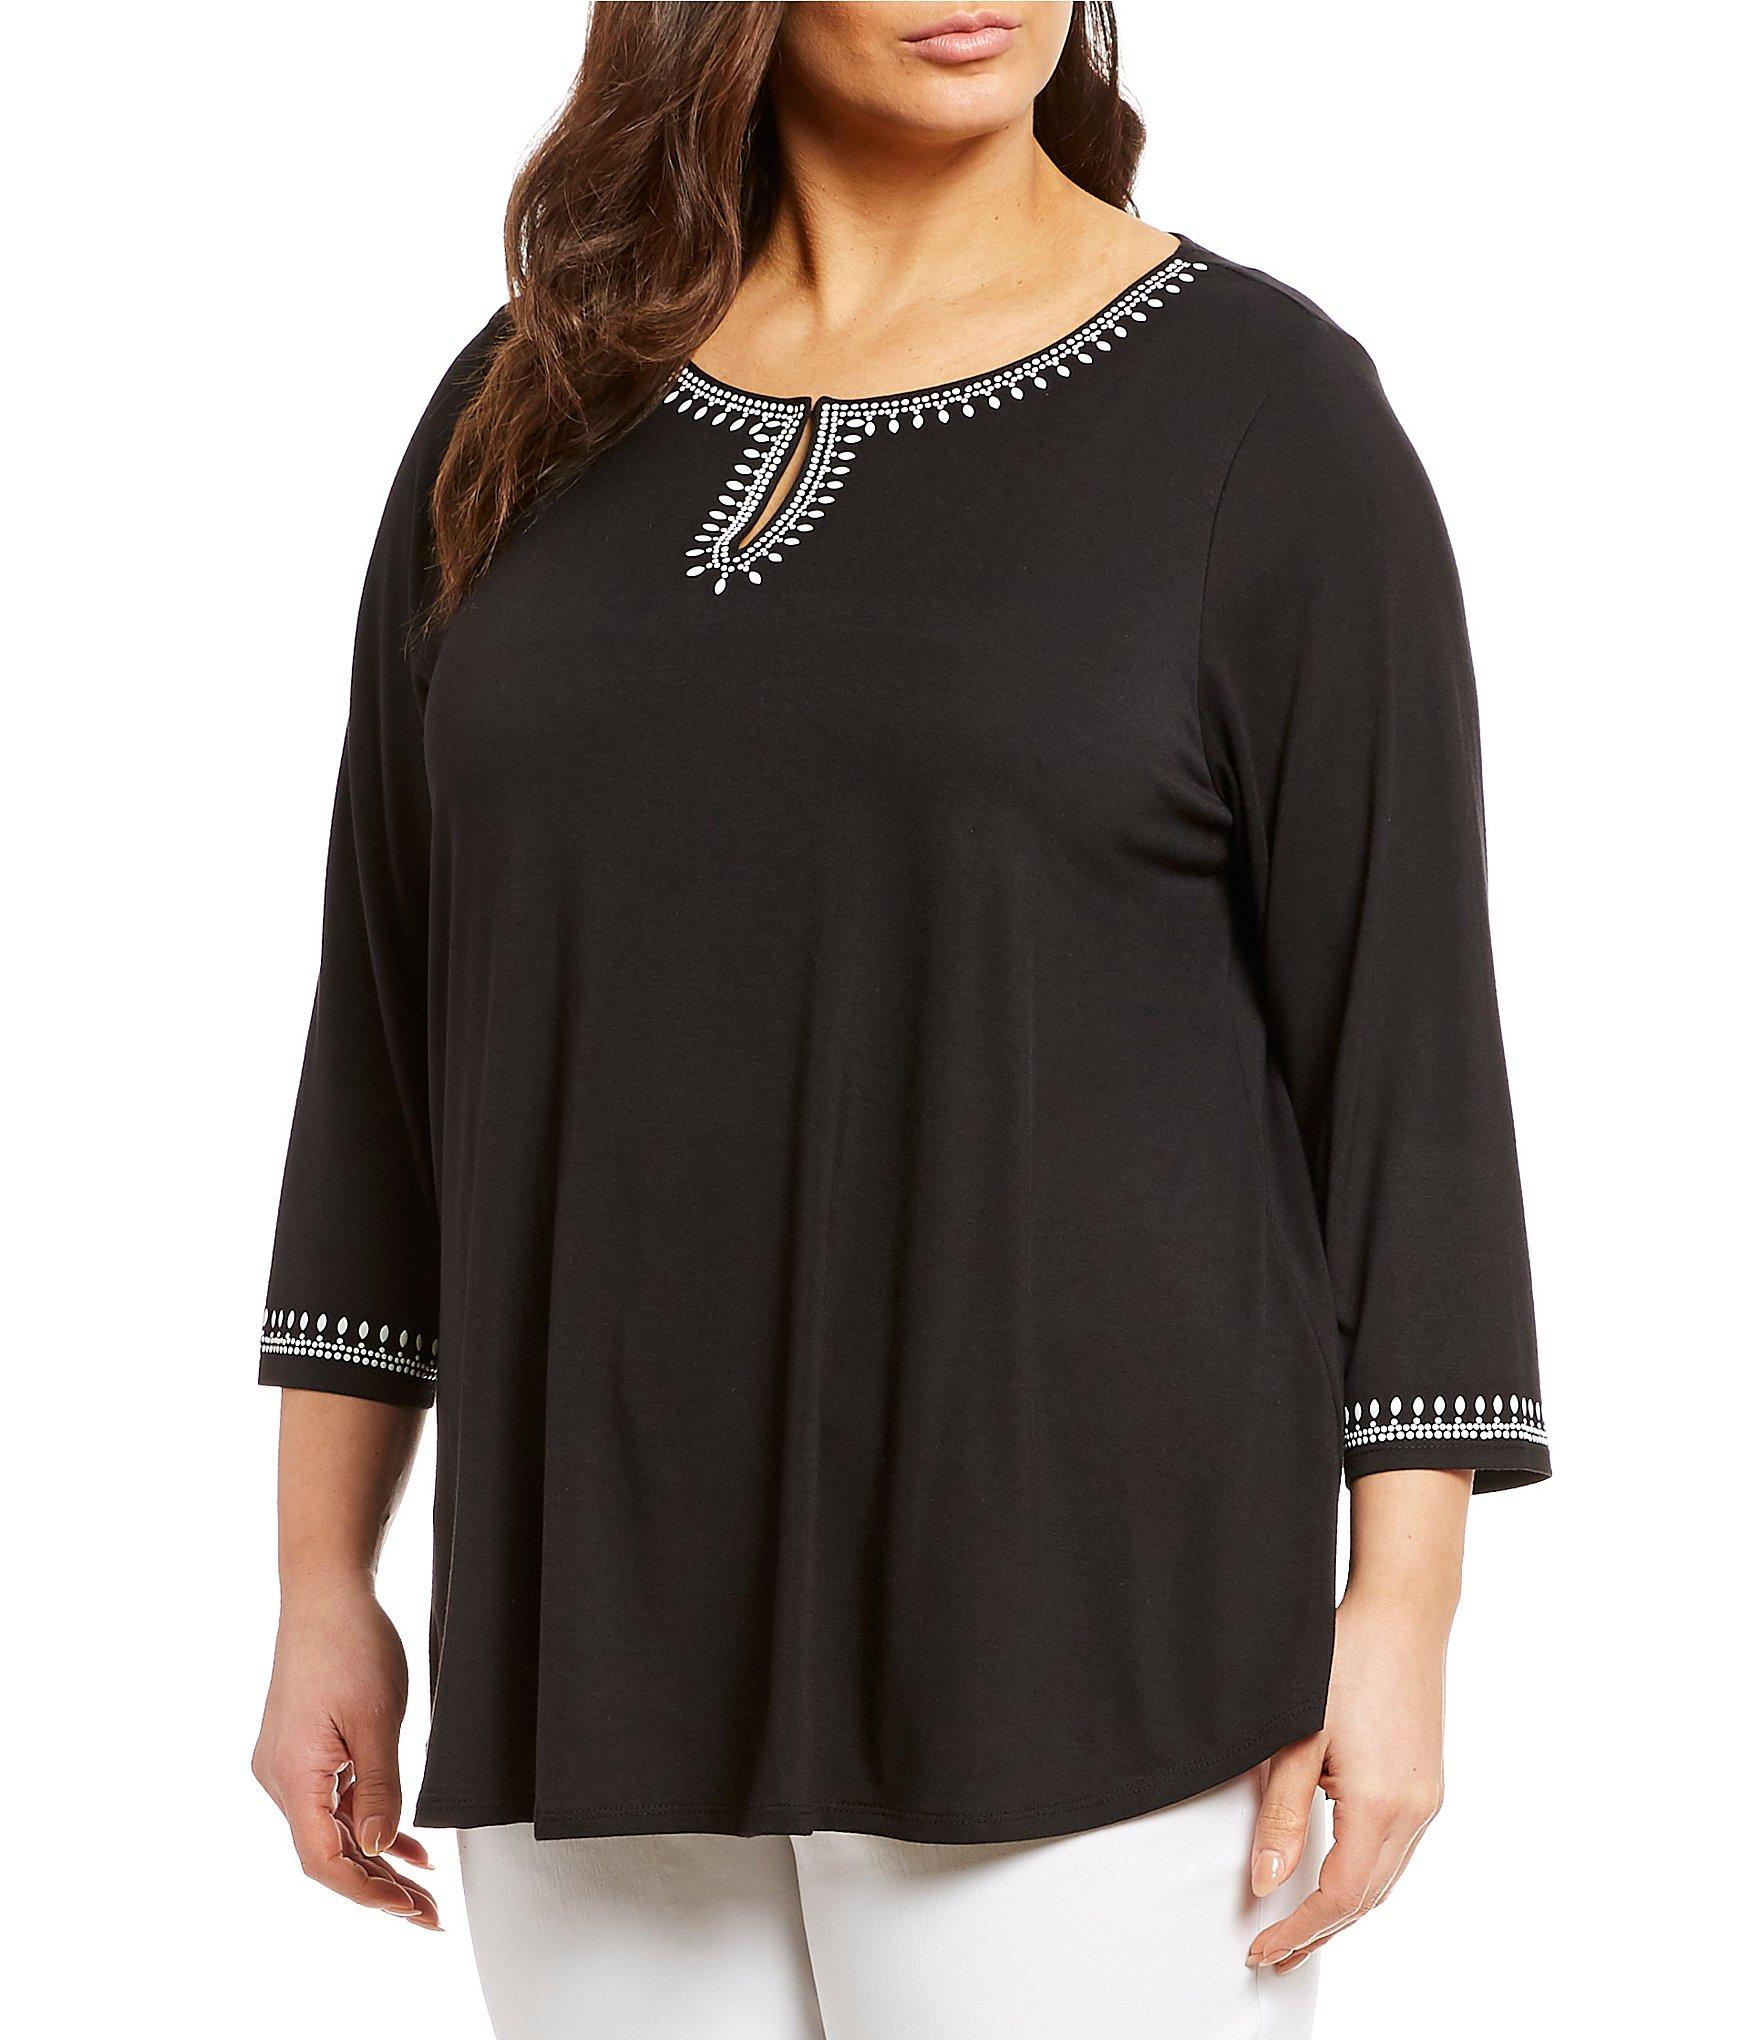 bc155f9e4c3 Lyst - Ruby Rd. Plus Size Embellished Notch V-neck 3 4 Sleeve Top in ...